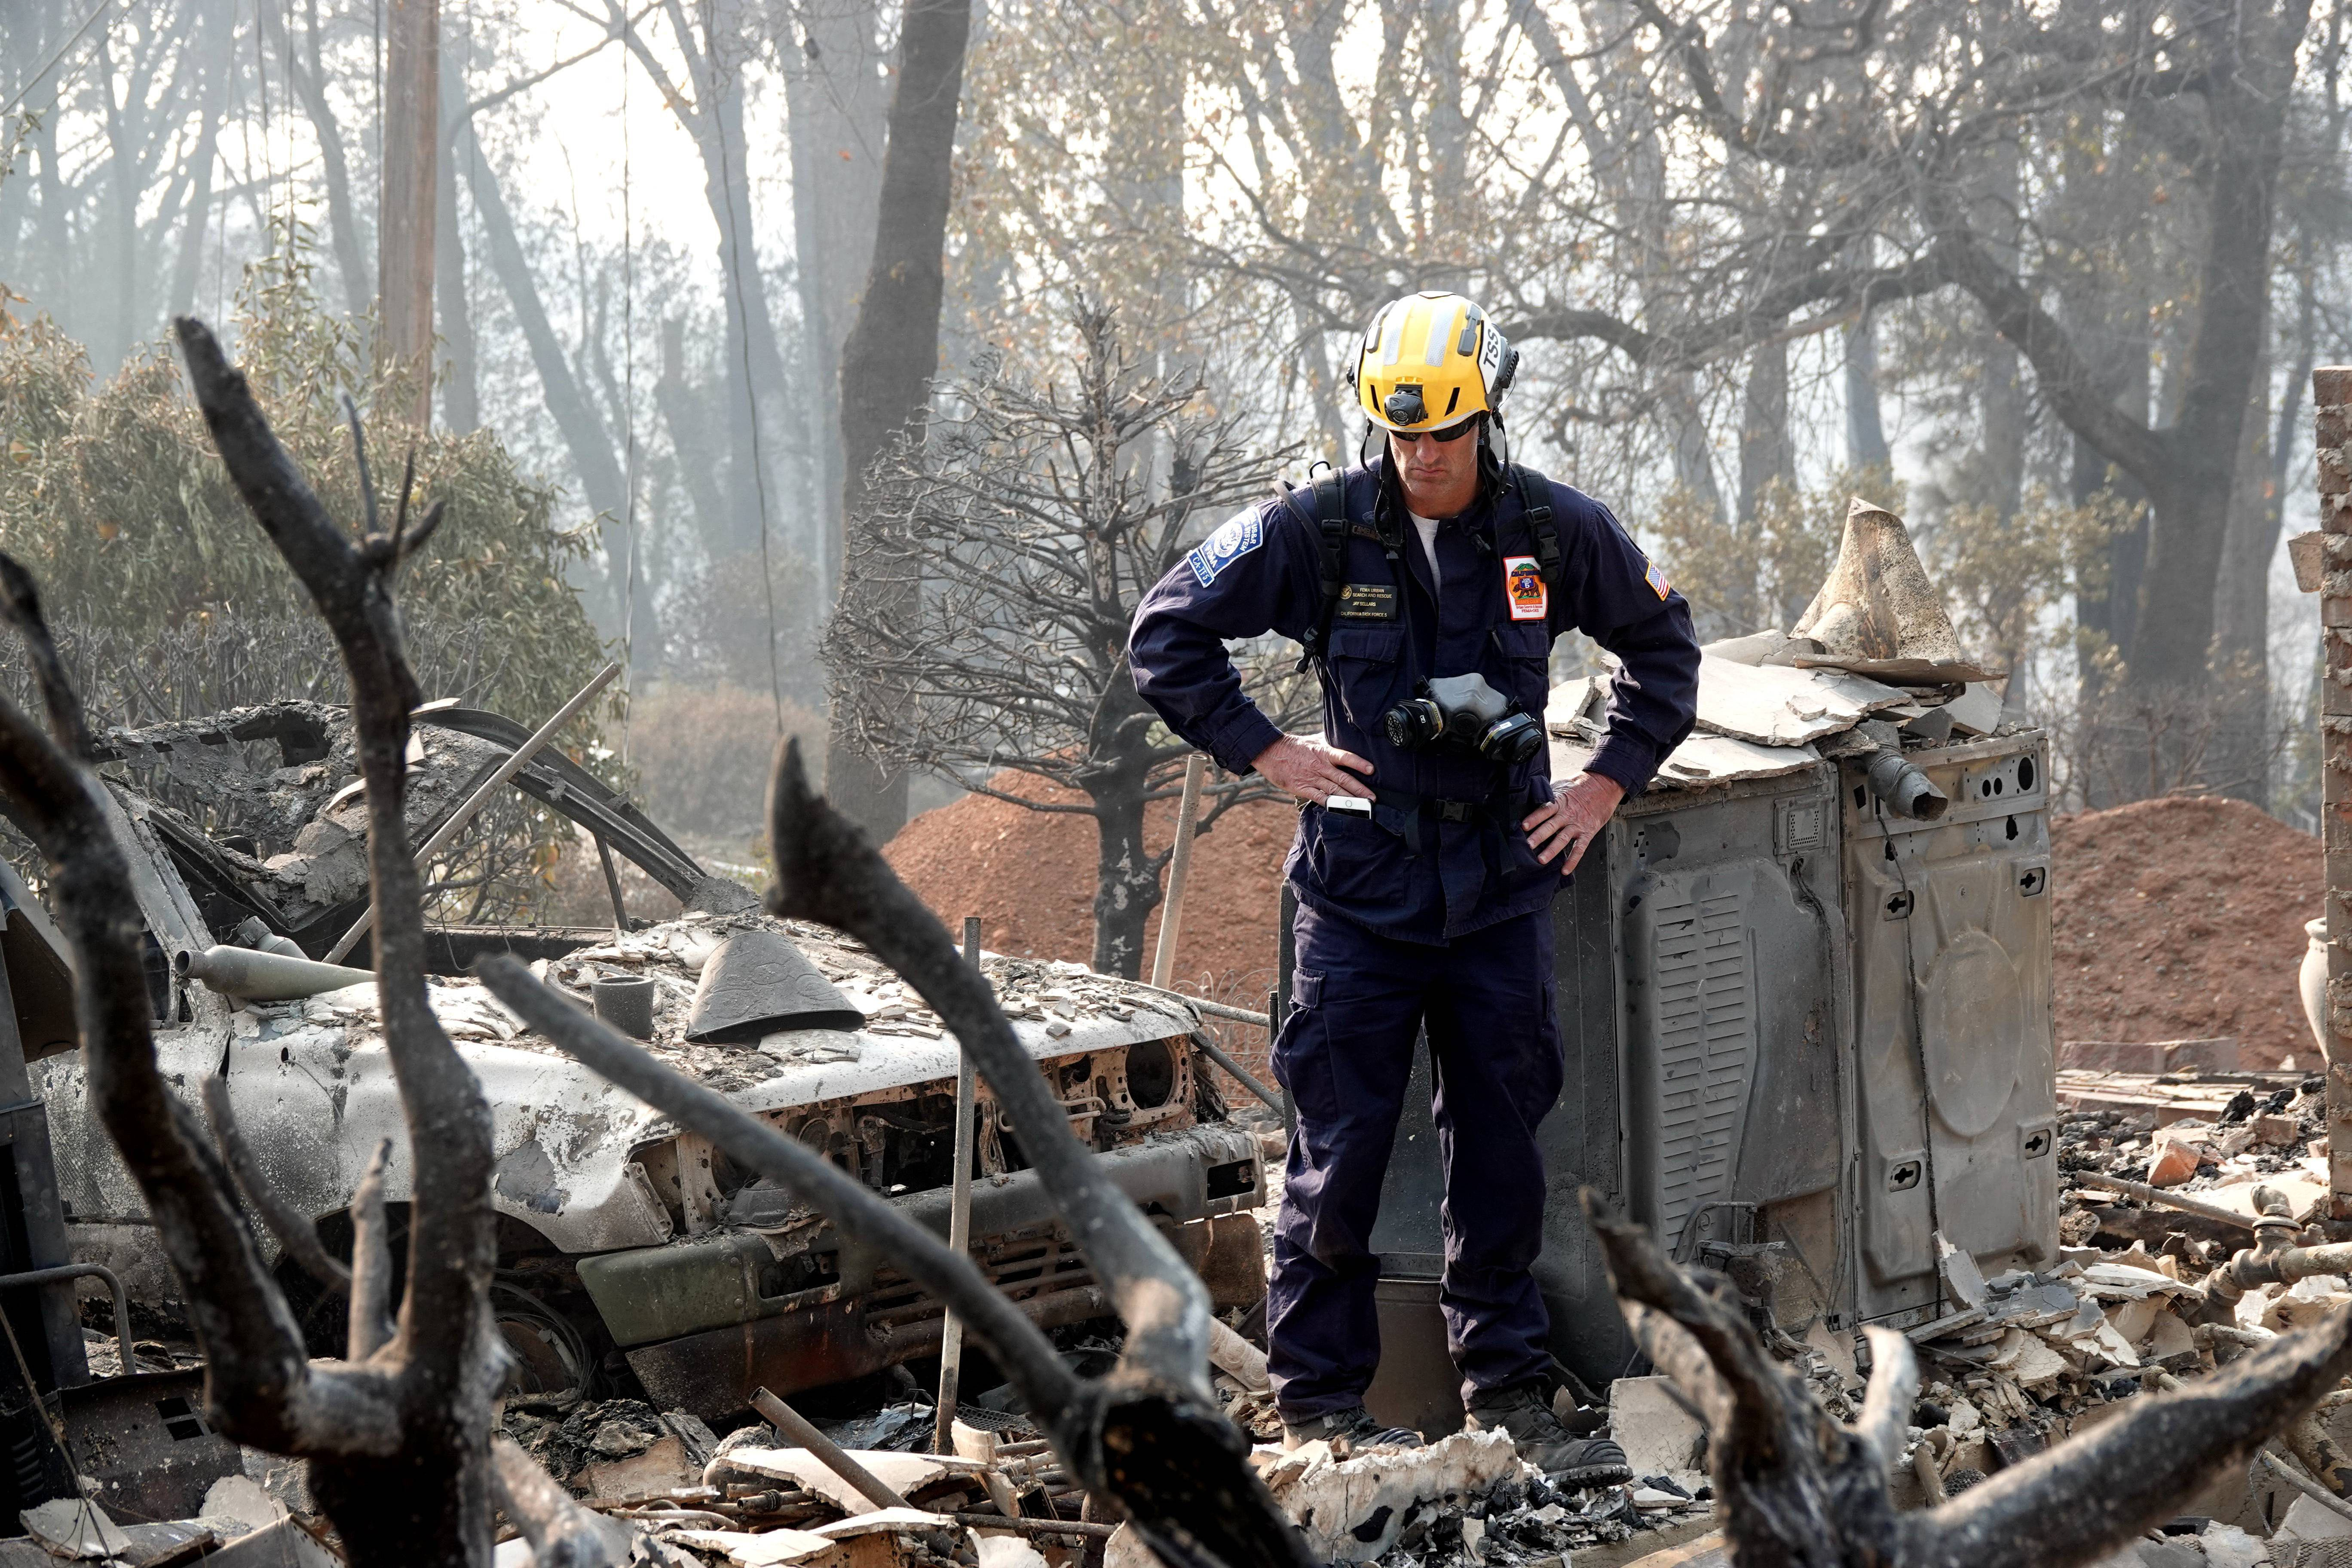 Rescue teams continue to search debris in Paradise, California, in the wake of the Camp fire's devastation.